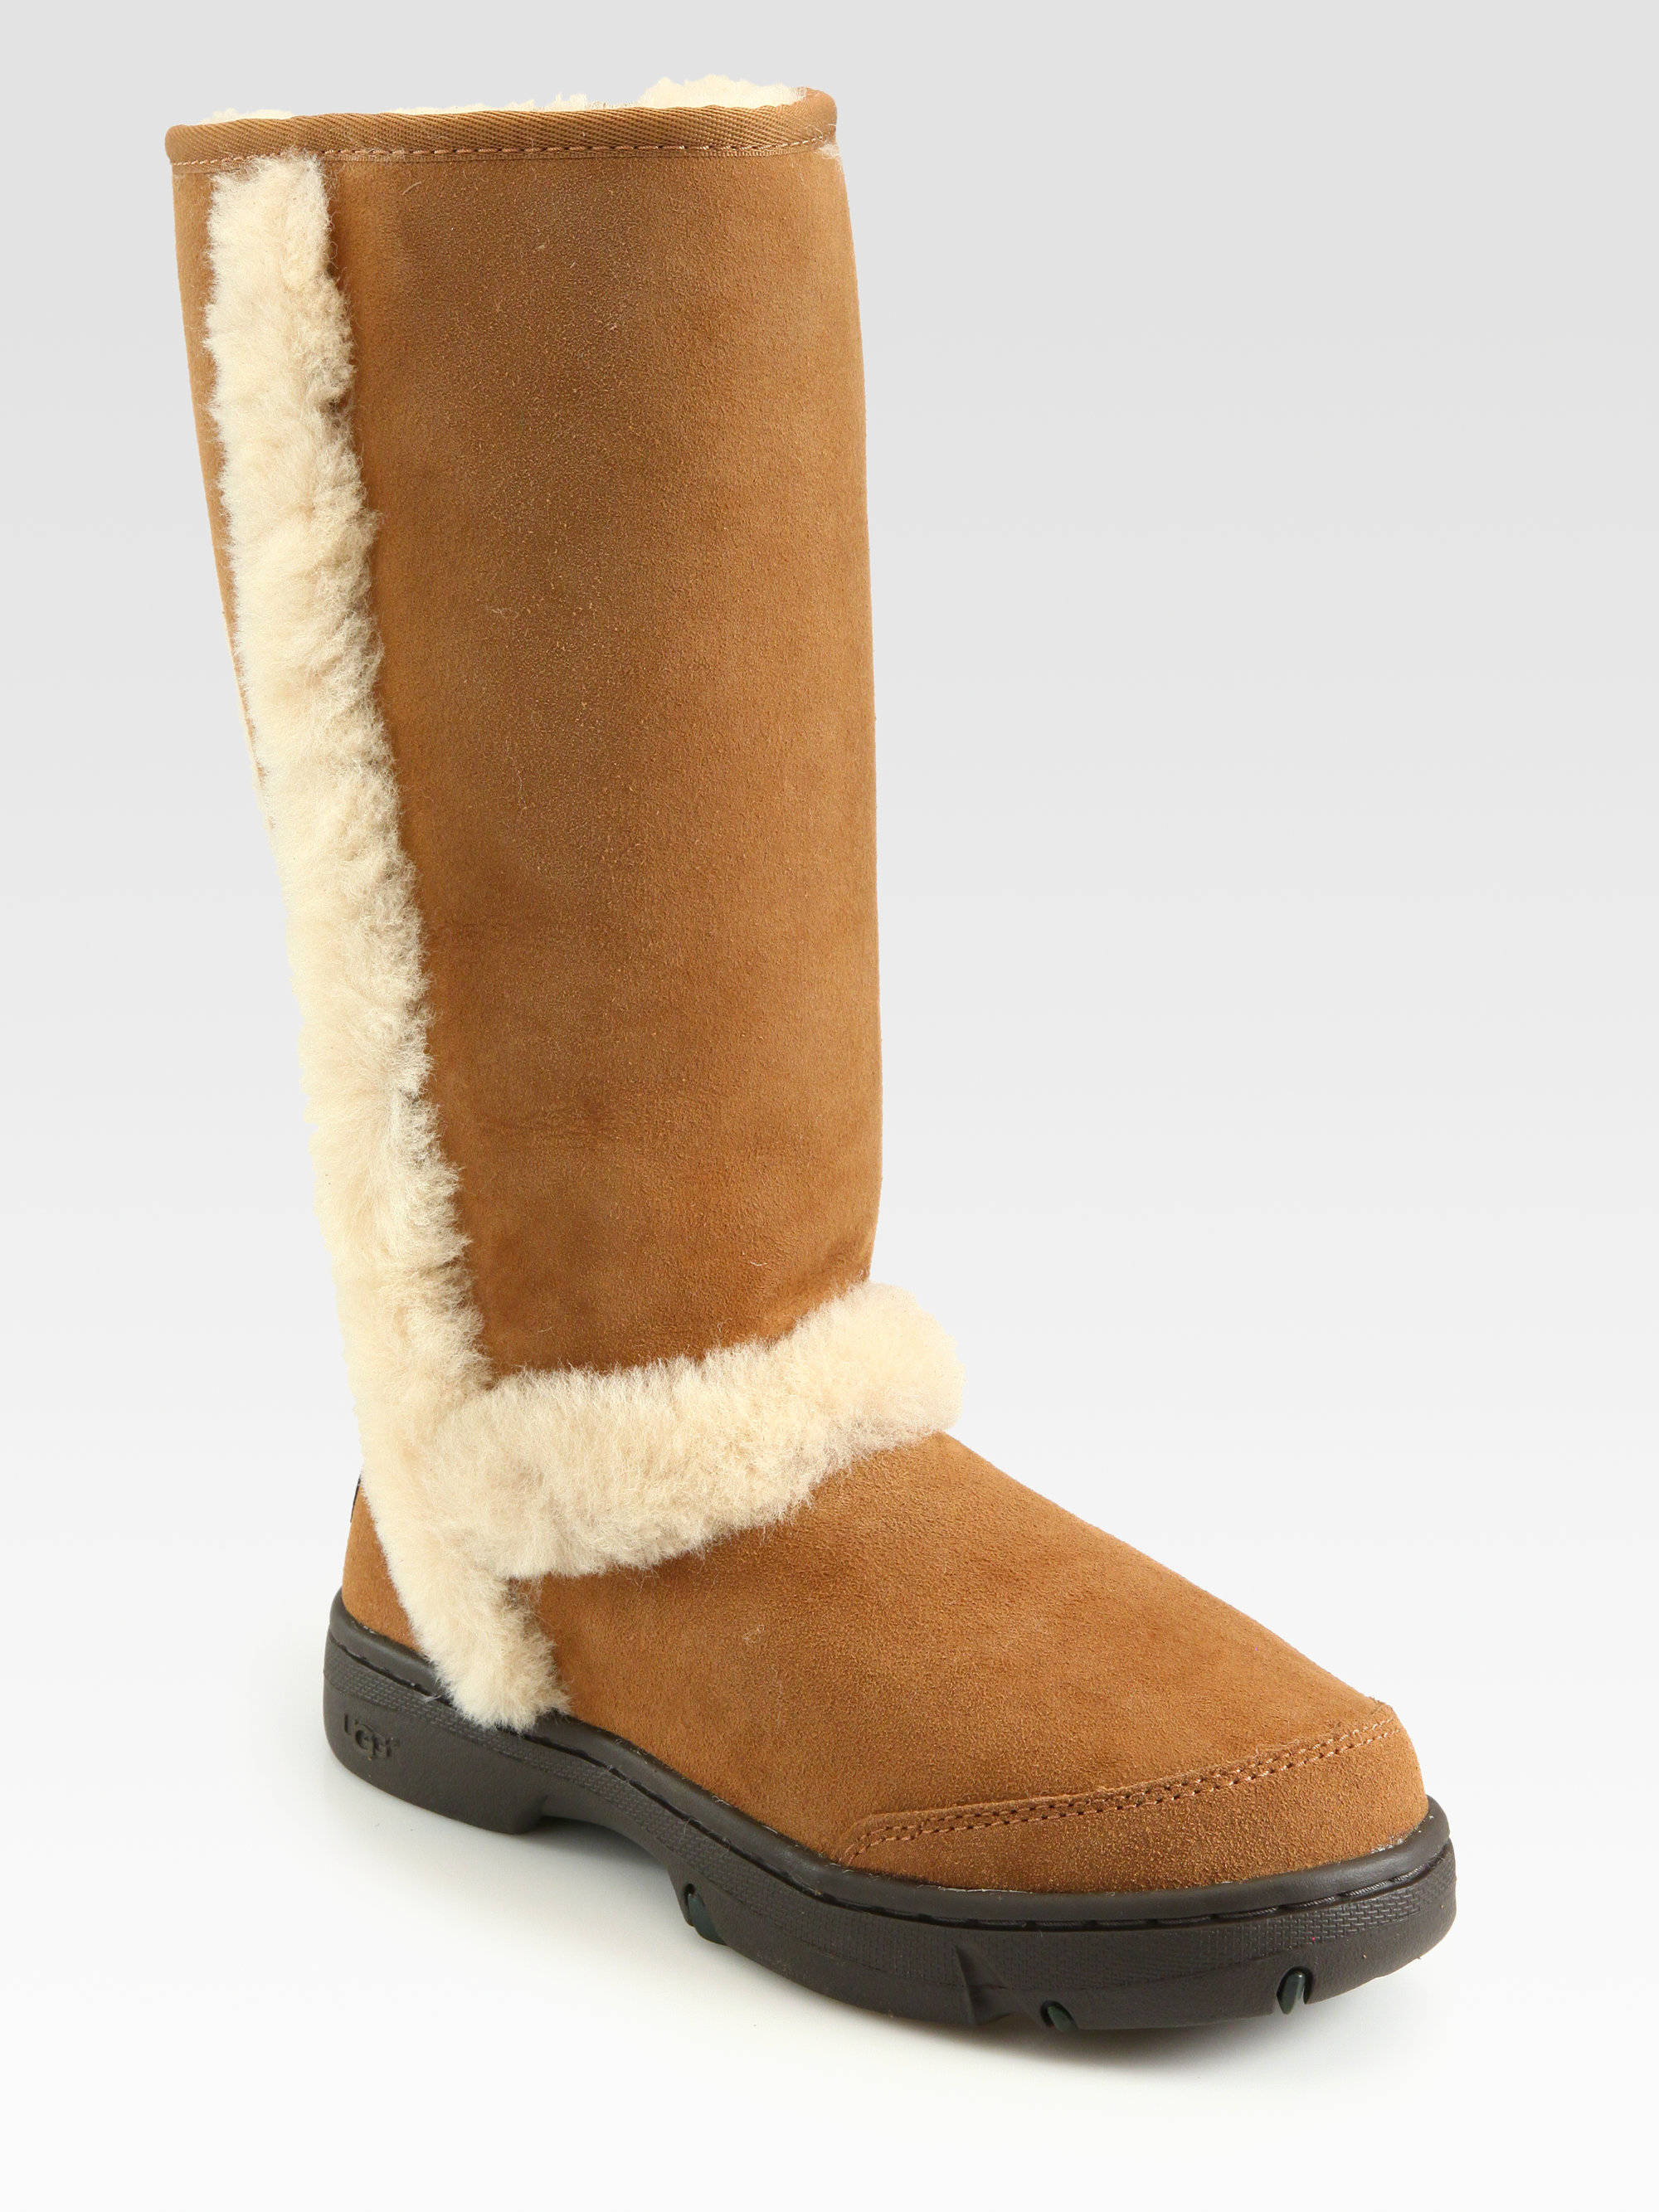 Lyst Ugg Shearling Trim Suede Tall Boots In Brown